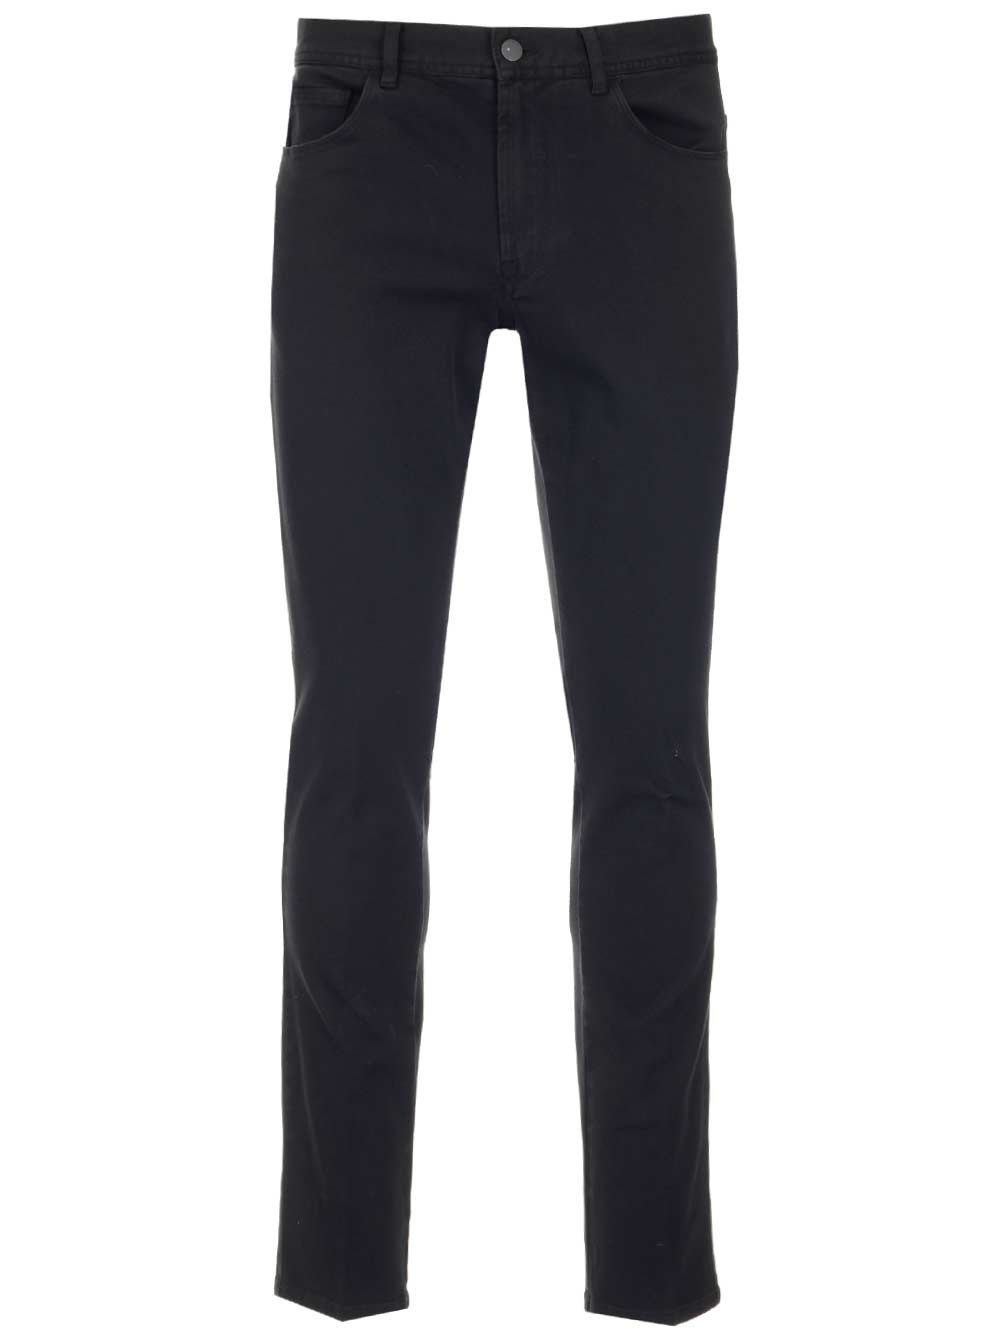 MONCLER GENIUS Long Pants - 2 Moncler 1952